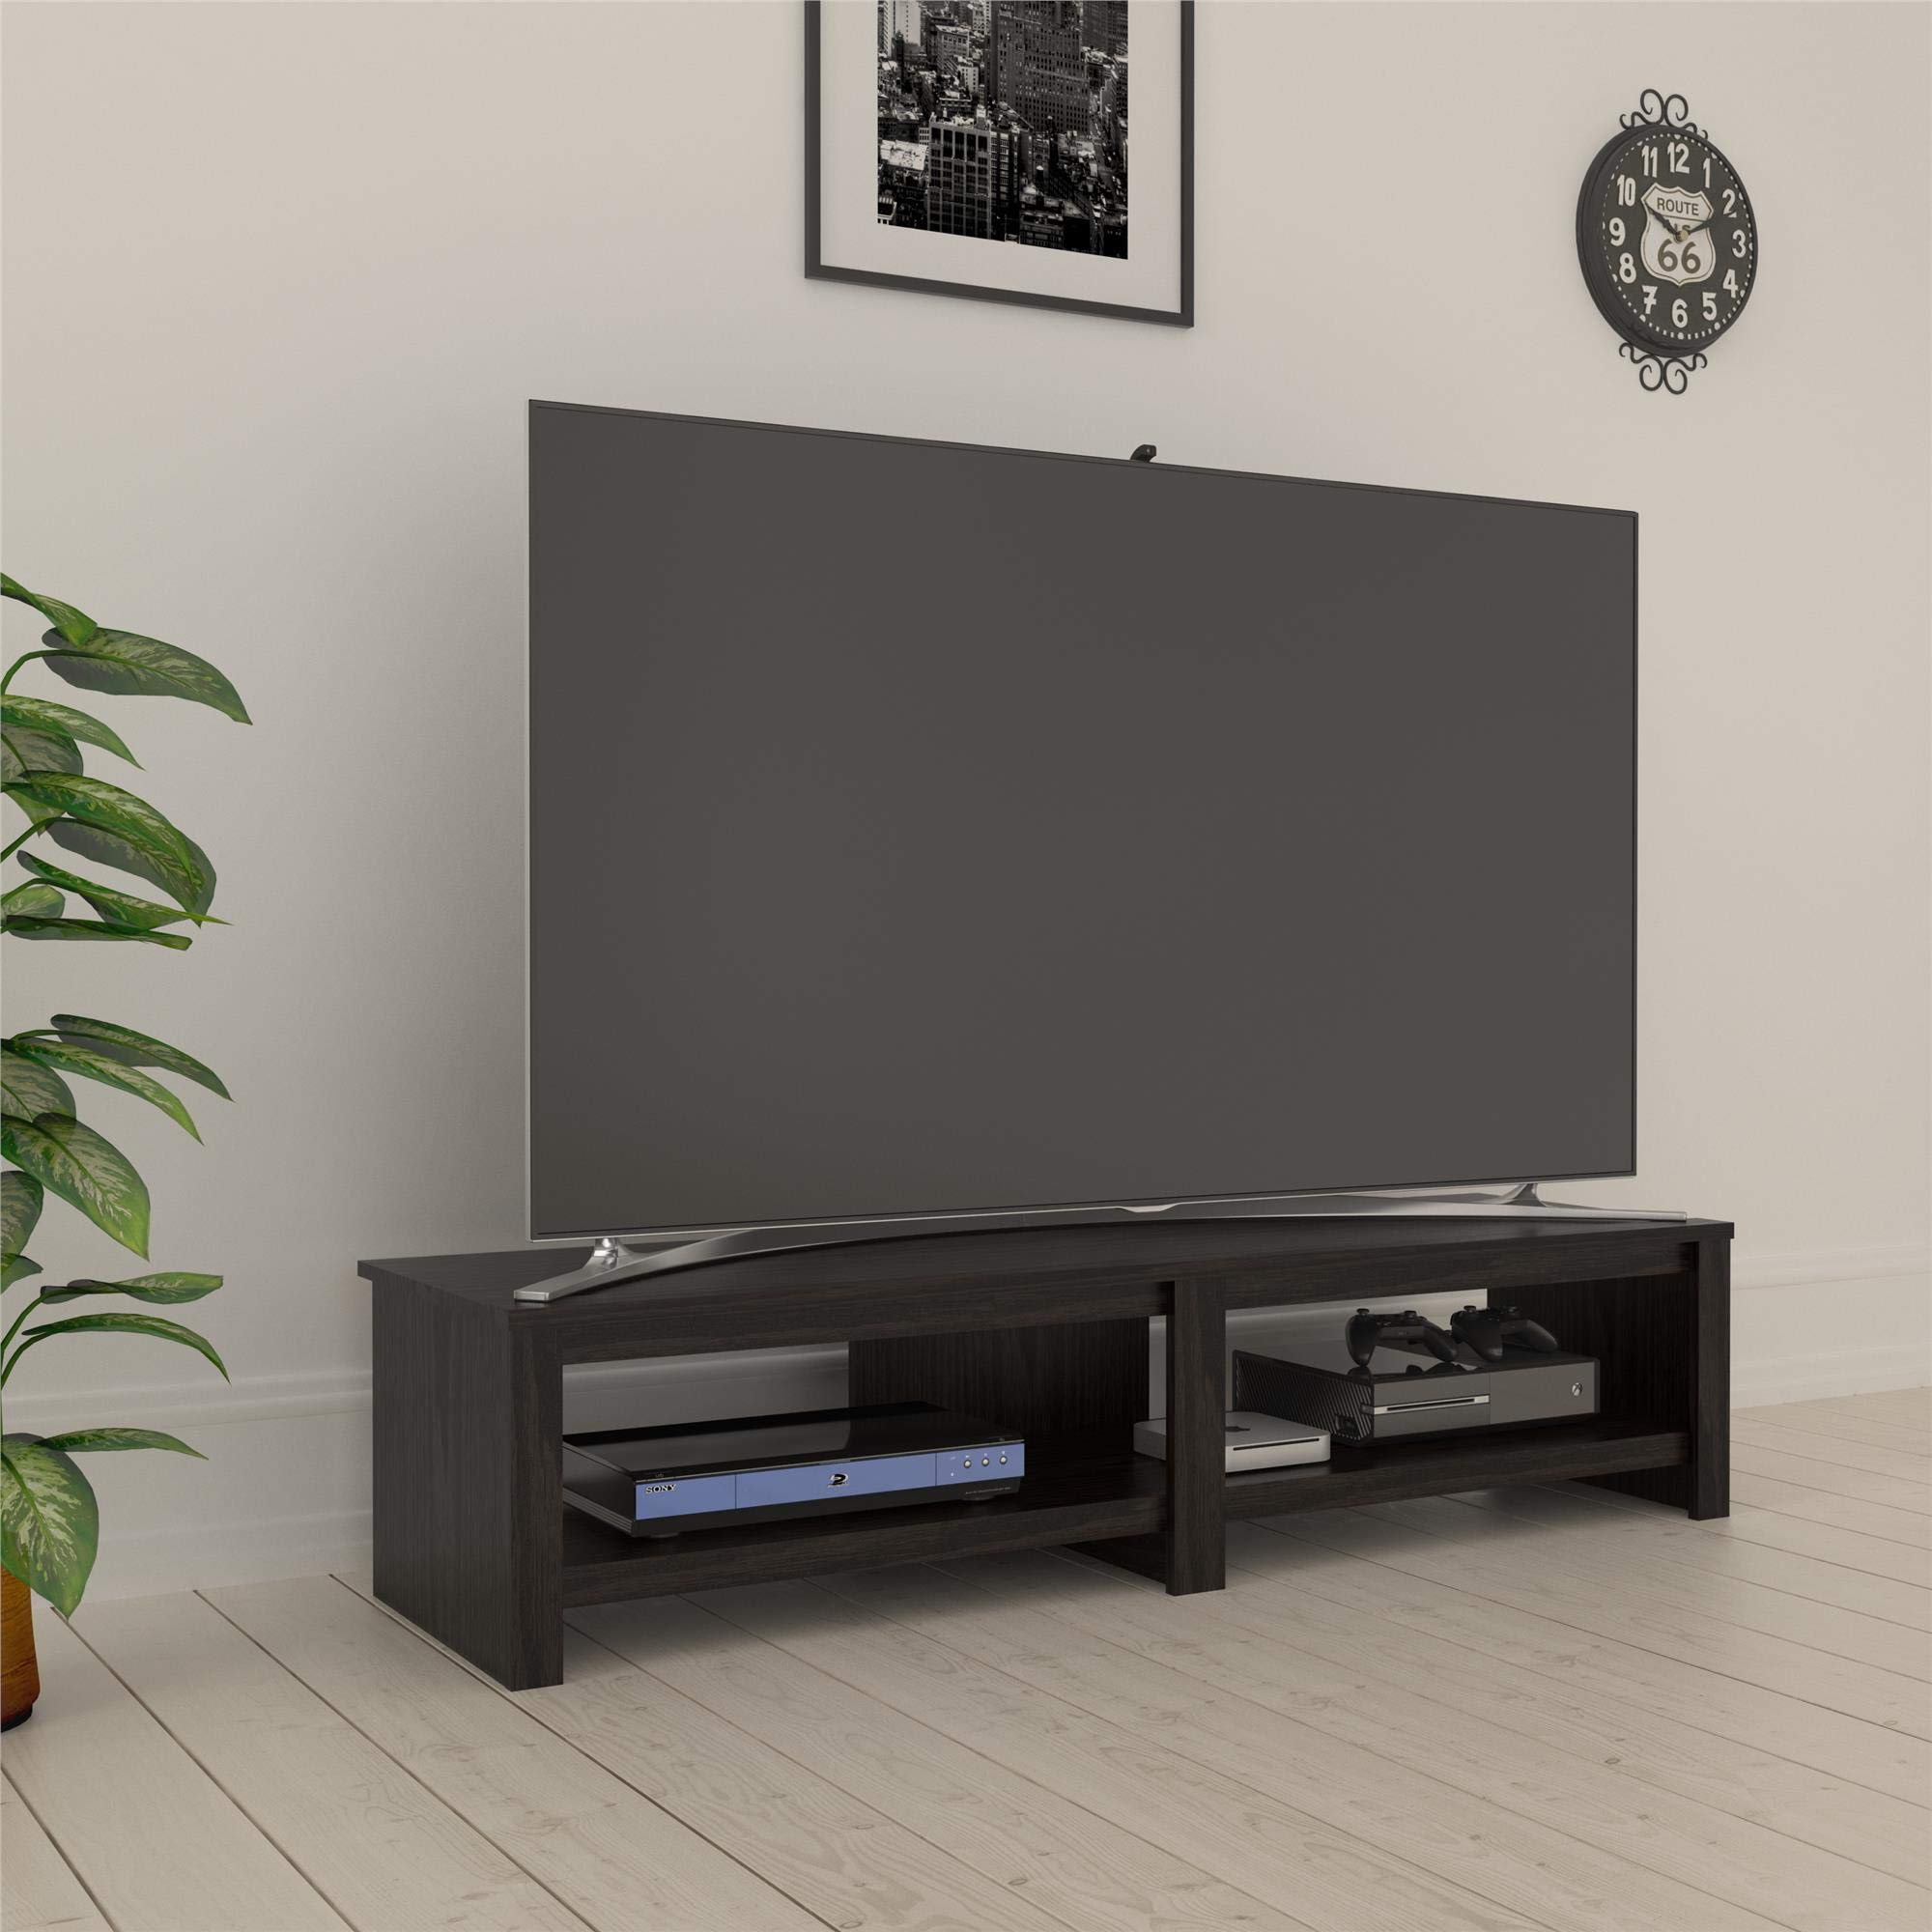 RealRooms Tally TV Stand For TVs Up To 74'' inches, Espresso